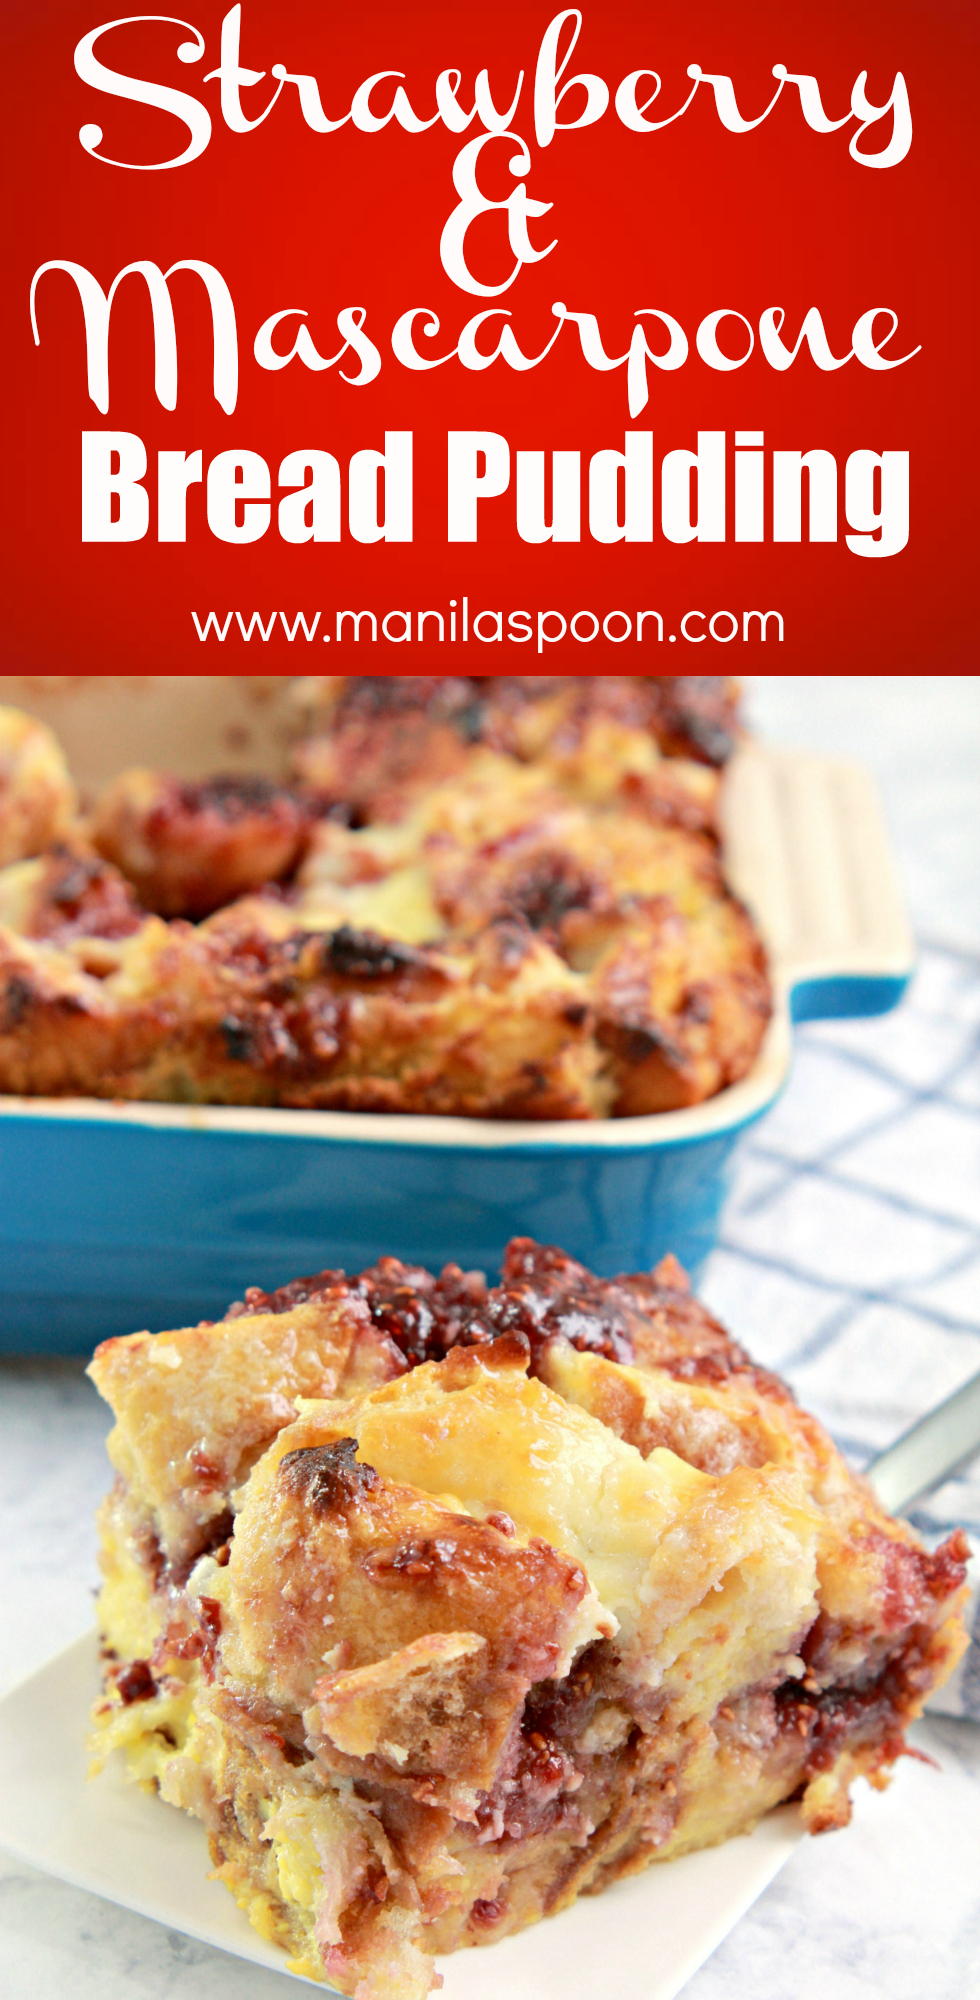 Such a show-stopping breakfast or dessert - this delicious bread pudding is loaded with creamy mascarpone cheese and strawberry jam. For a different spin - use fresh berries that are in season! So good!